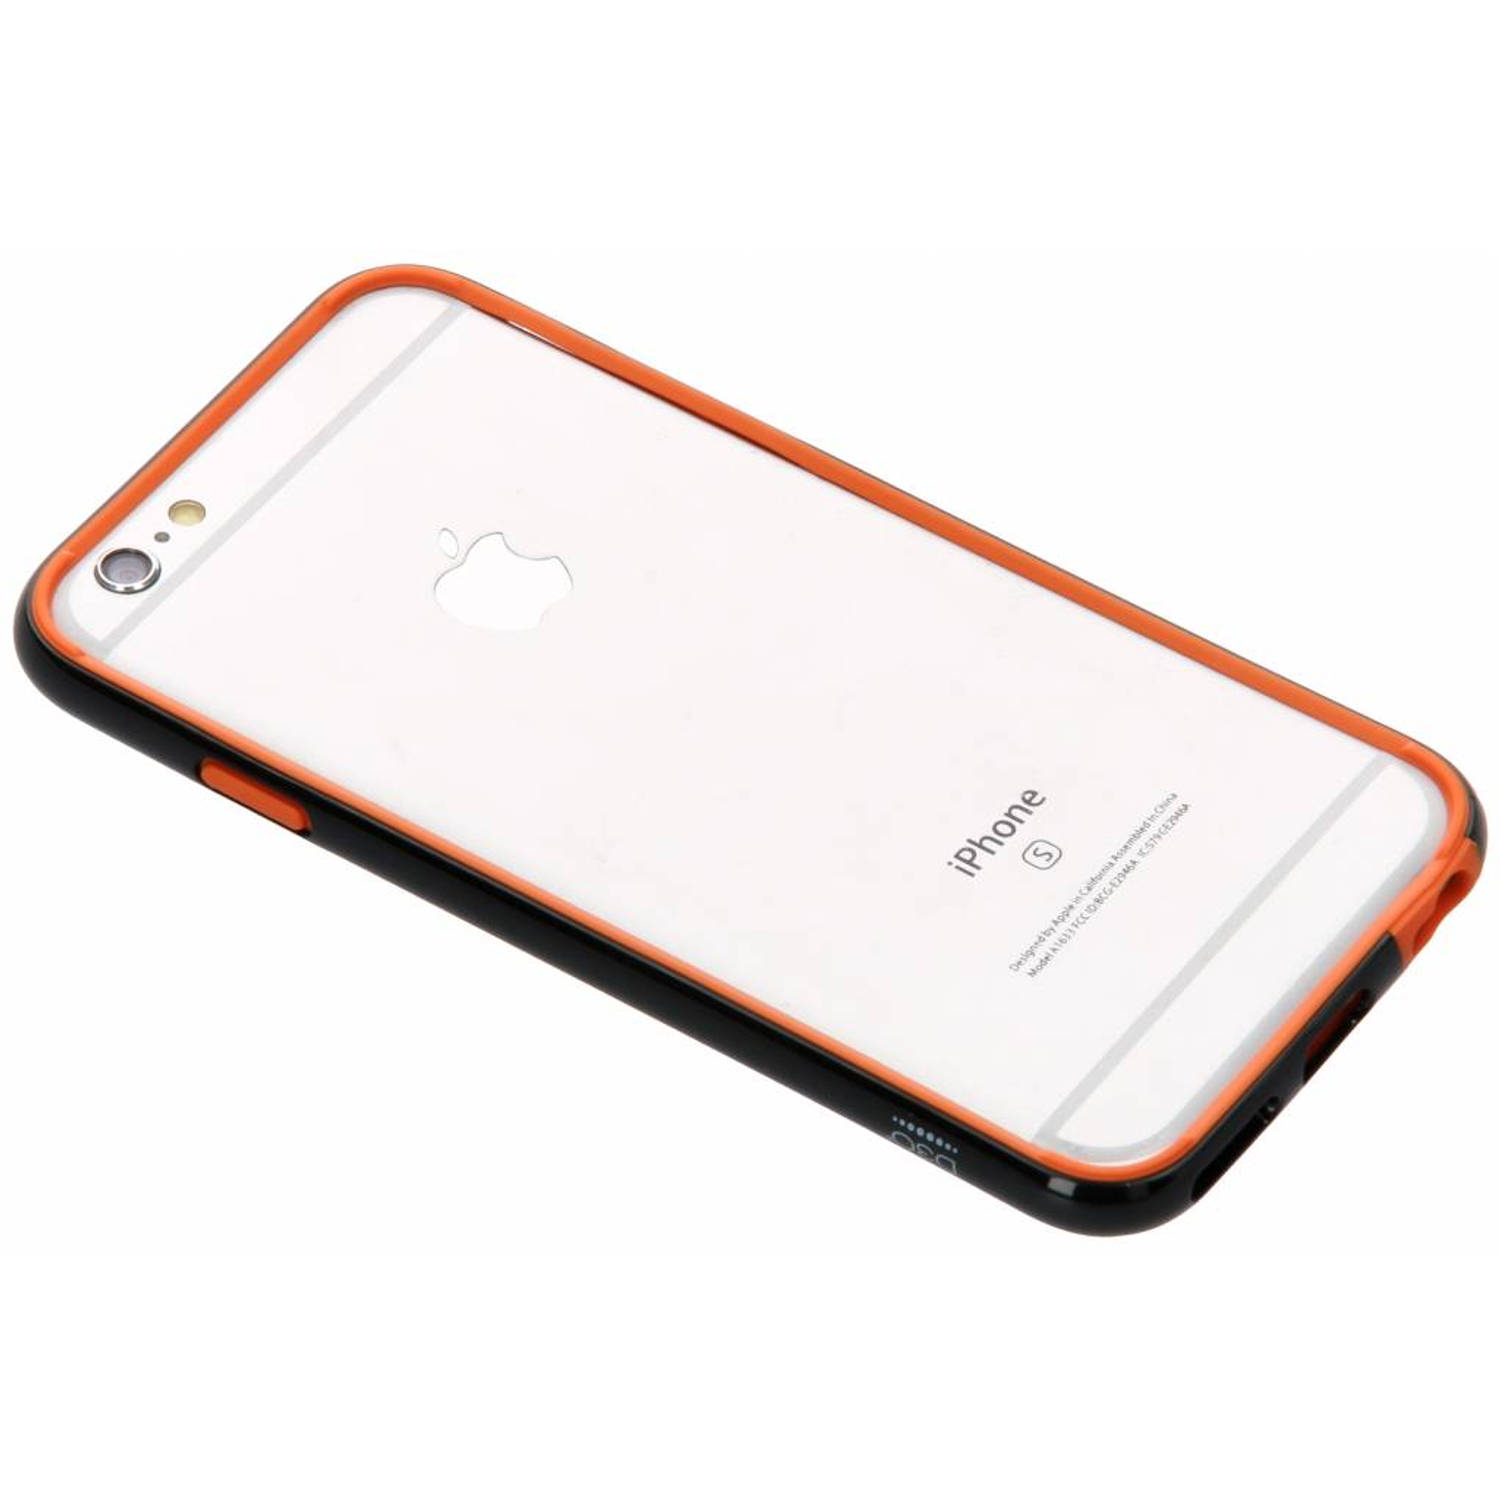 Zwarte D3O The Band Case voor de iPhone 6 / 6s